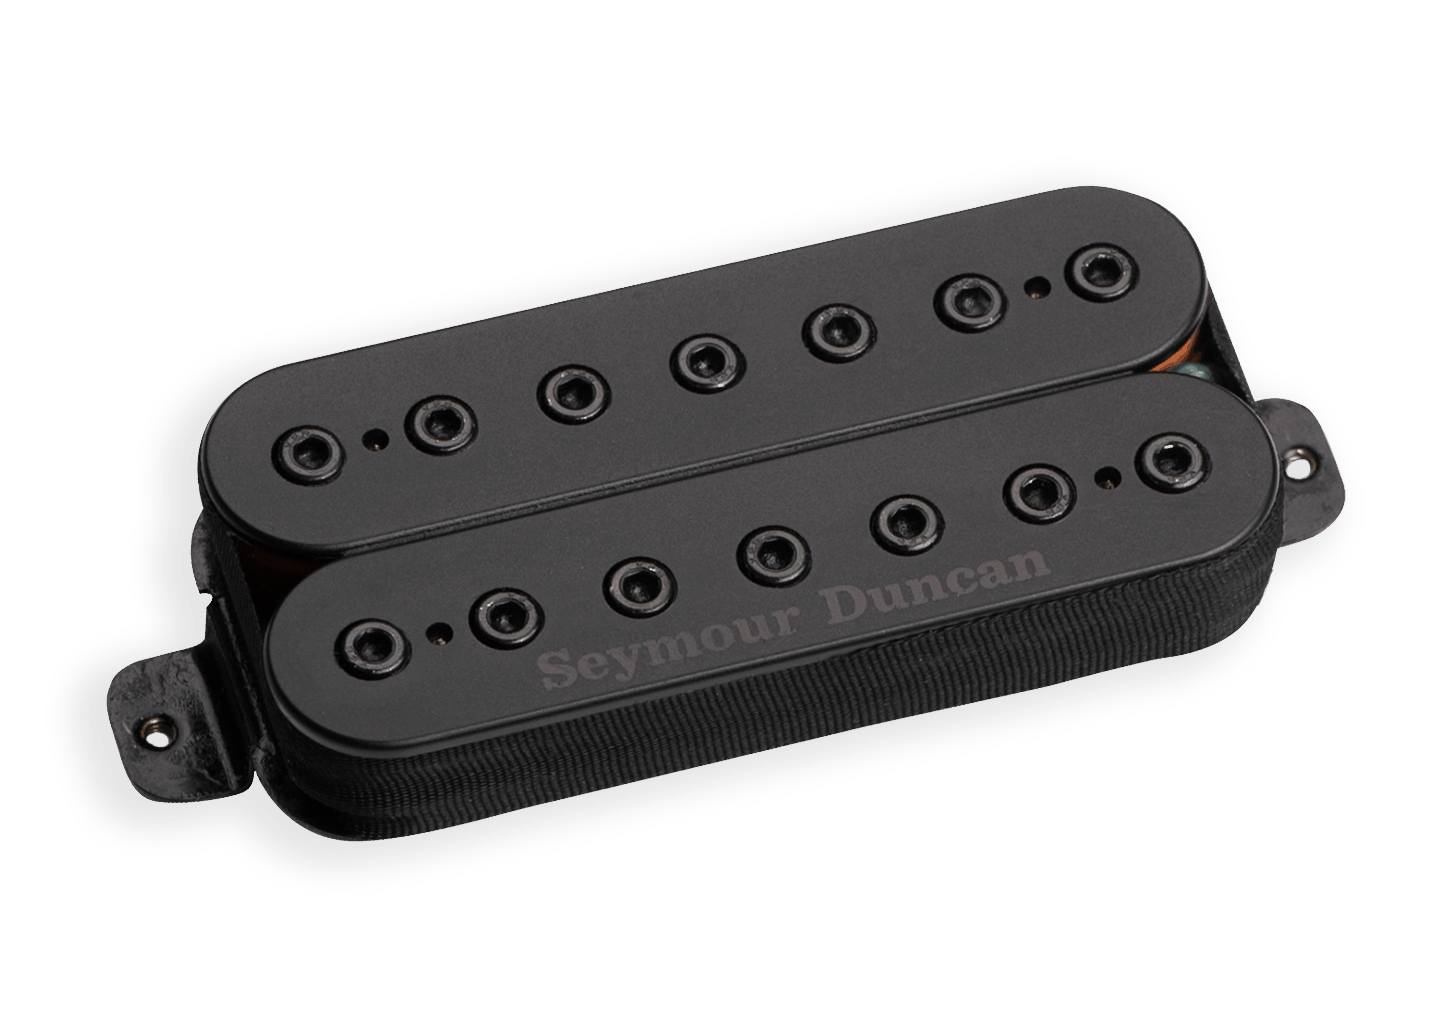 Signature Mark Holcomb Passive Humbucker Pickups